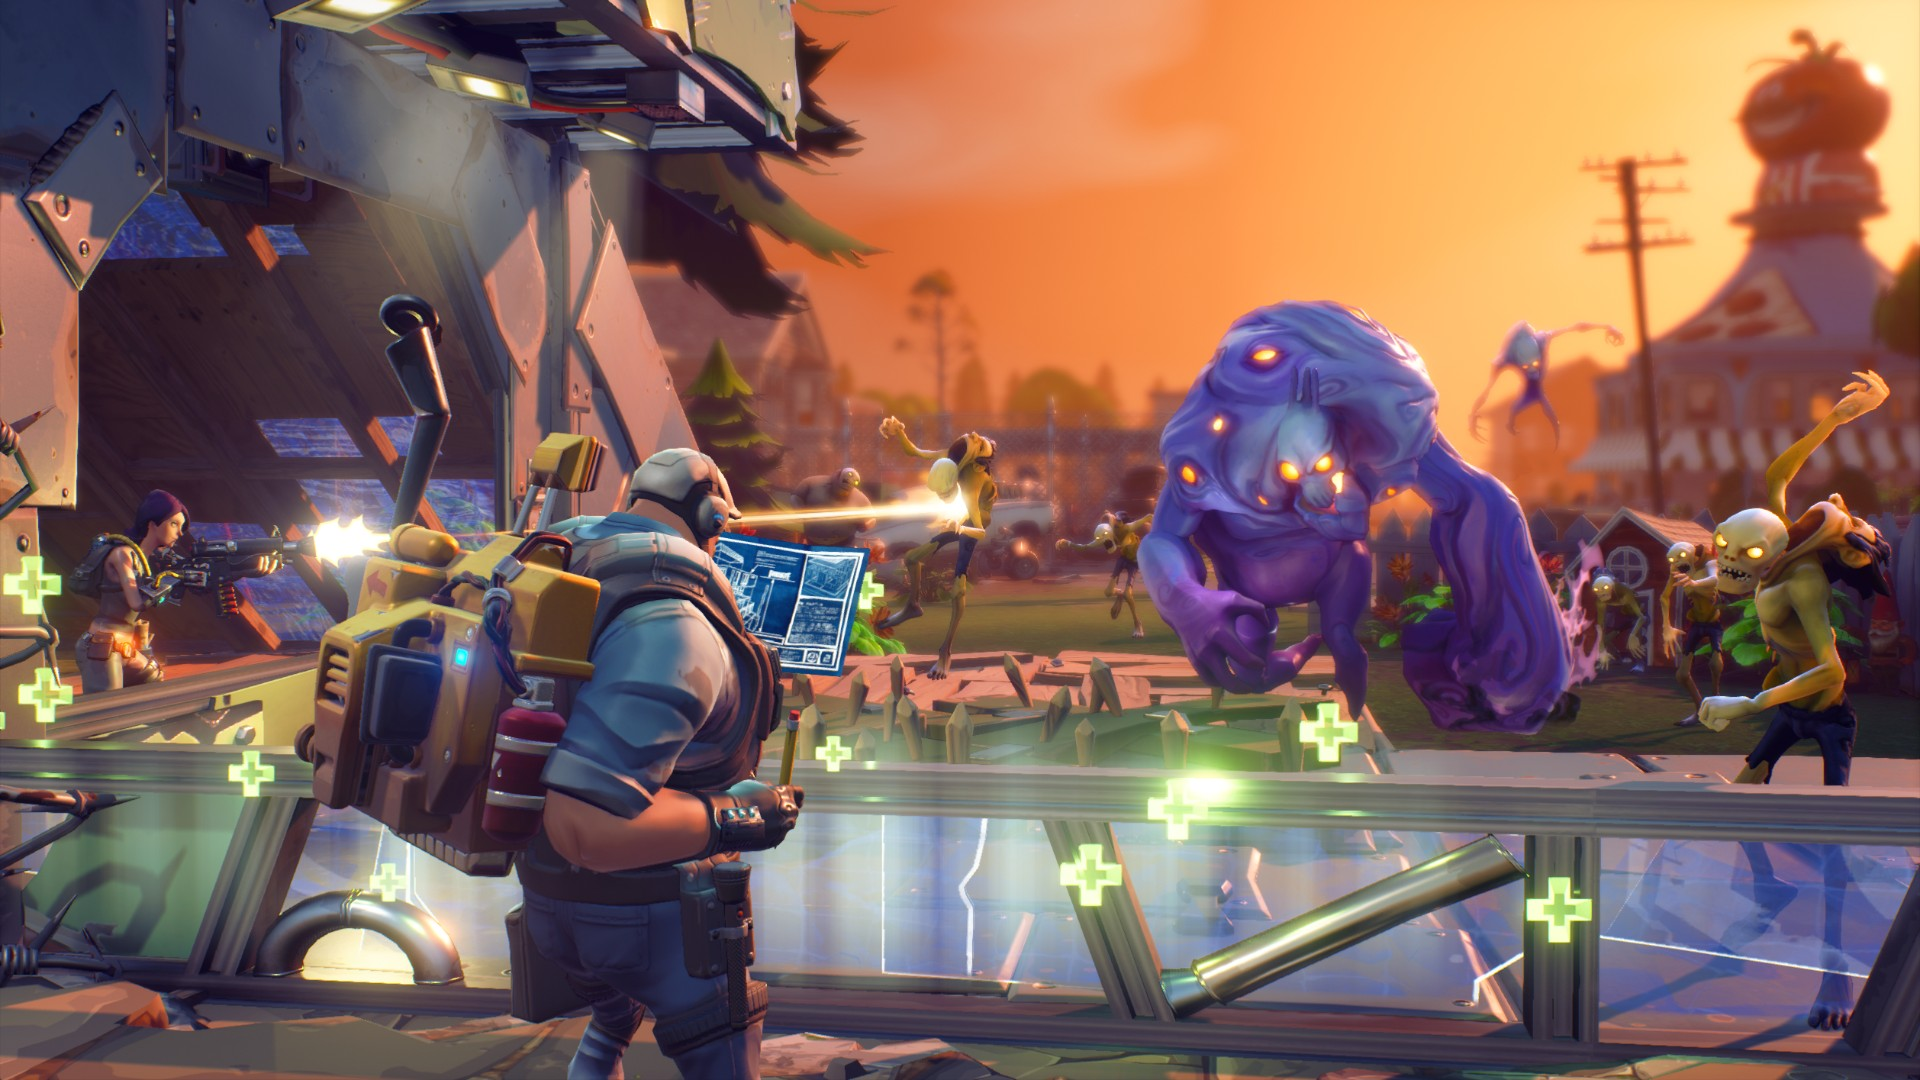 Fortnite New Screenshots Gameplay Trailer Released Dsogaming